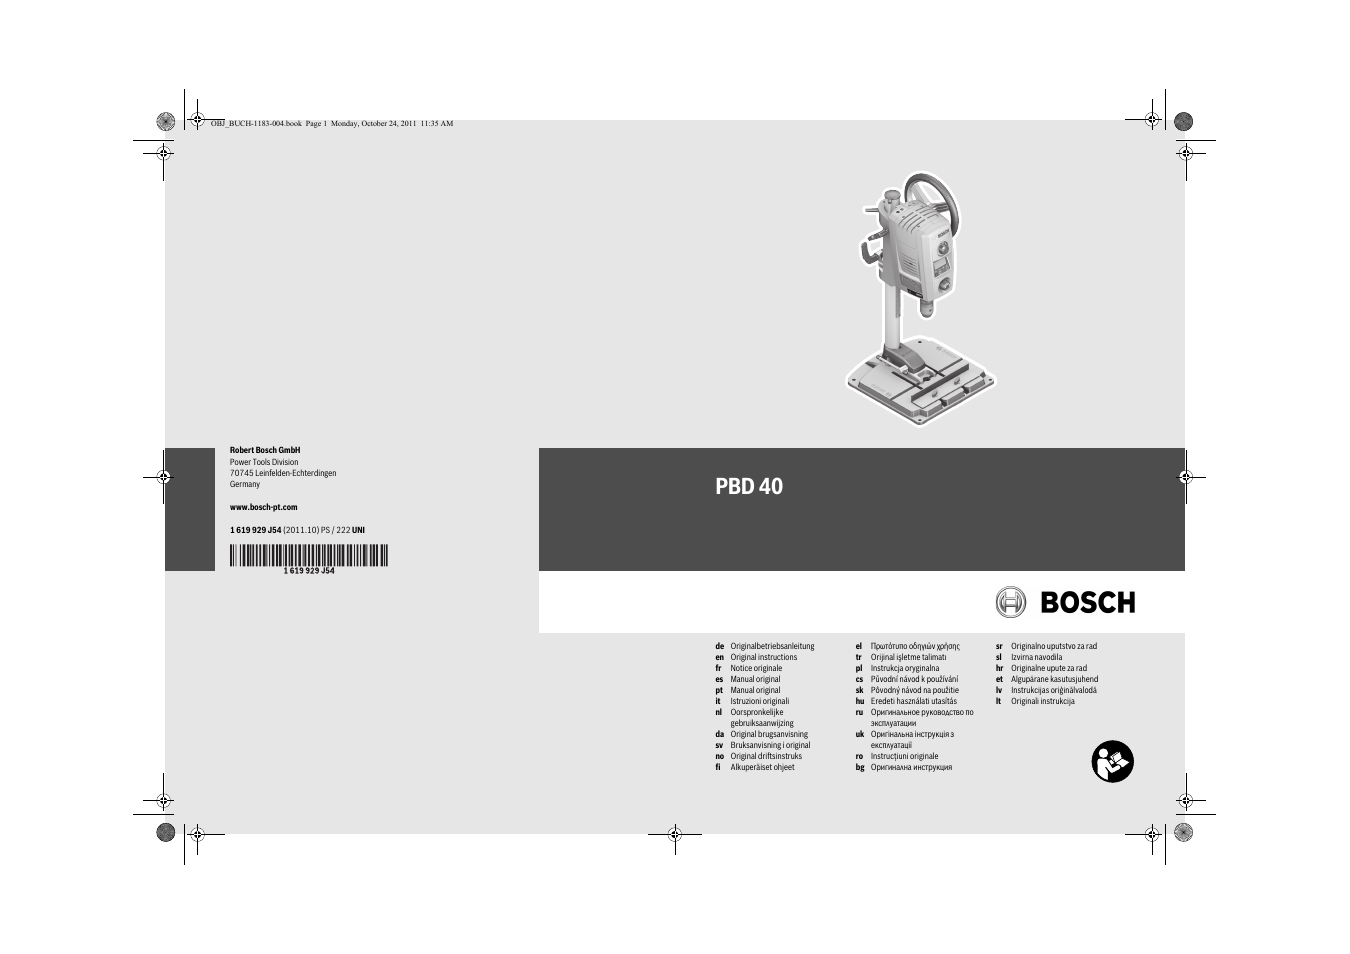 bosch pbd 40 user manual 221 pages rh manualsdir com bosch owners manual 11248evs bosch owners manual 1581vs jigsaw